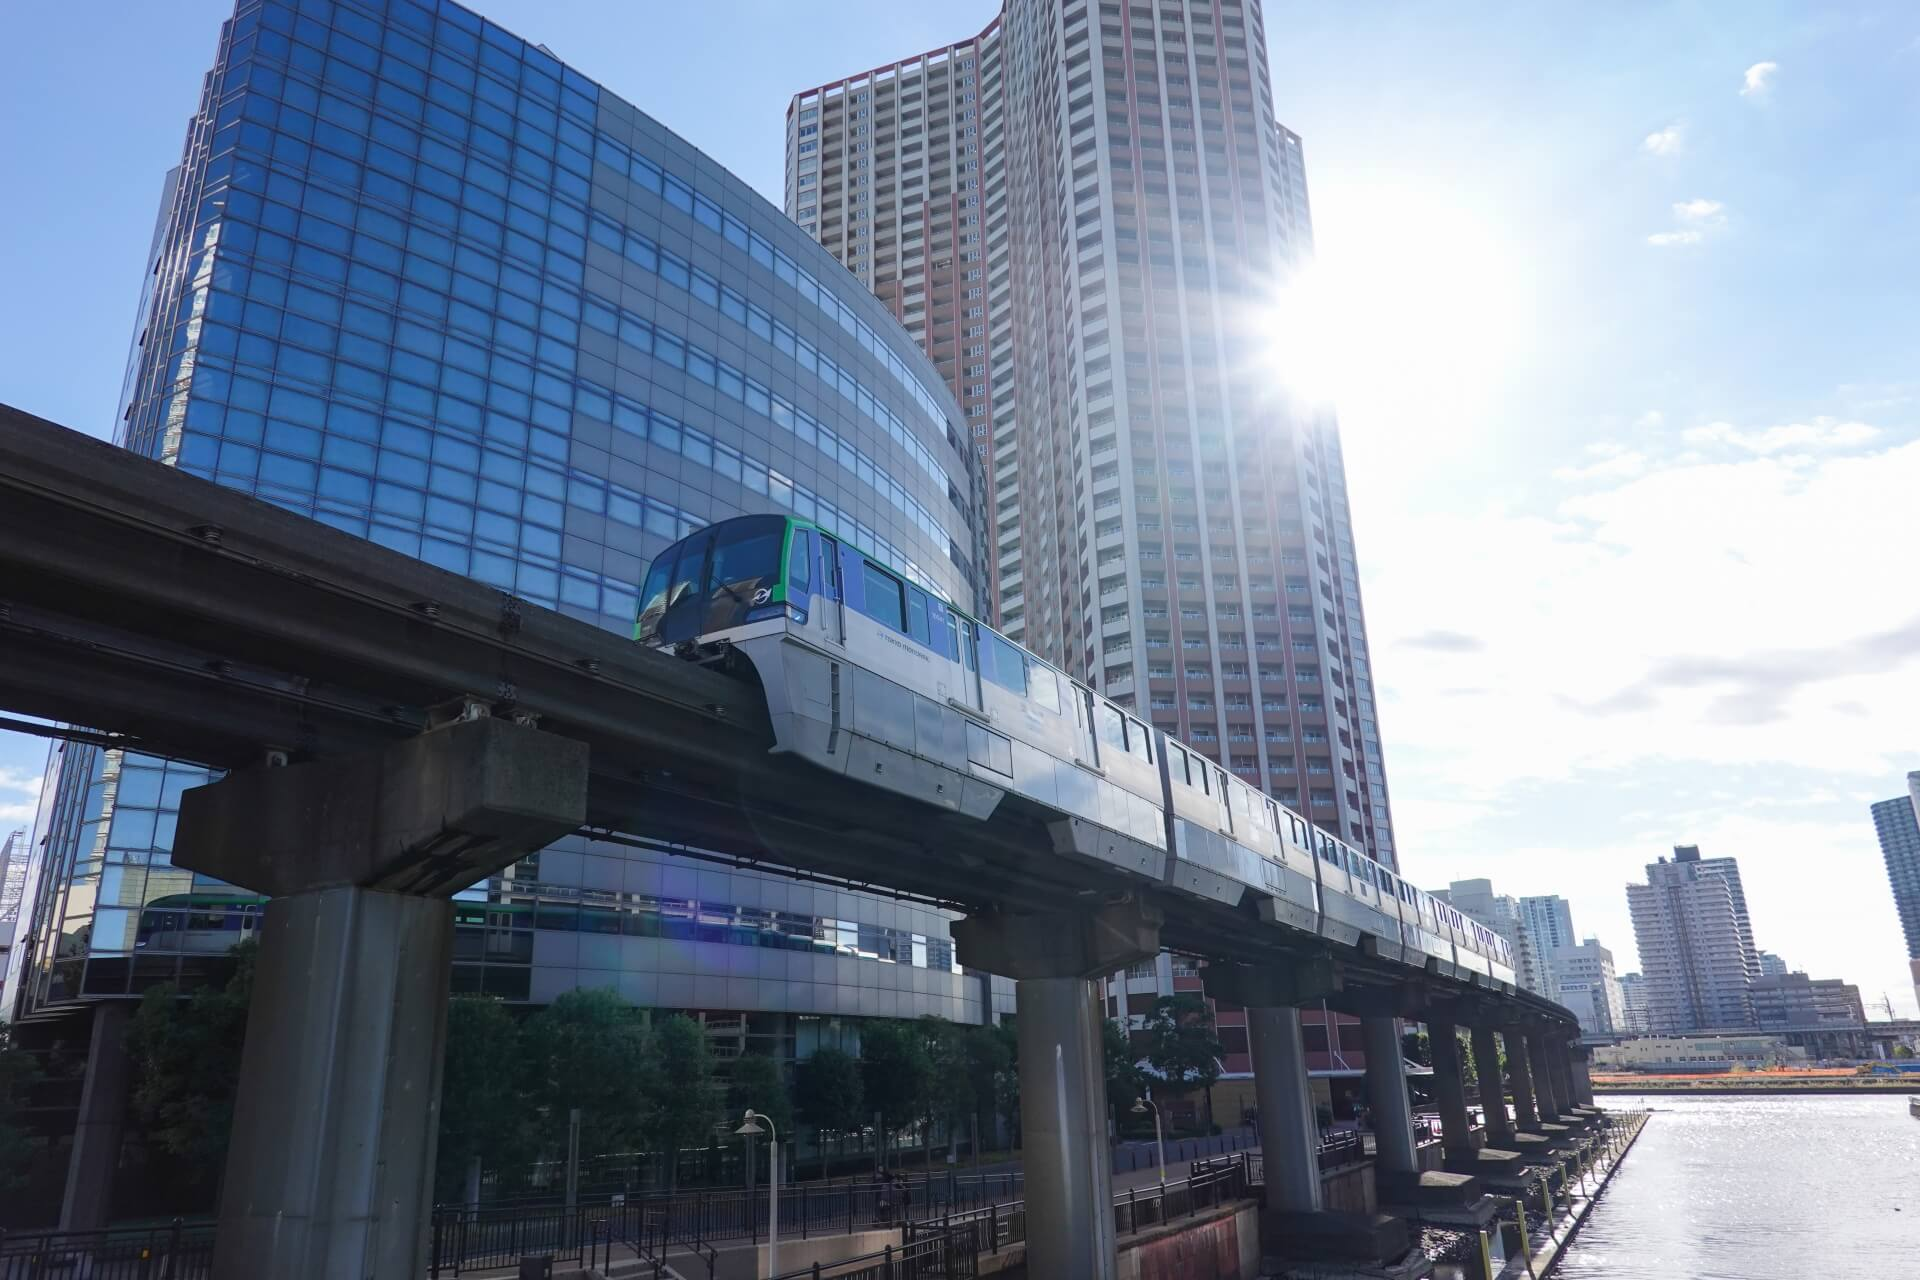 Best Way to Get from Haneda Airport to Tokyo – Train, Bus or Private Transport?